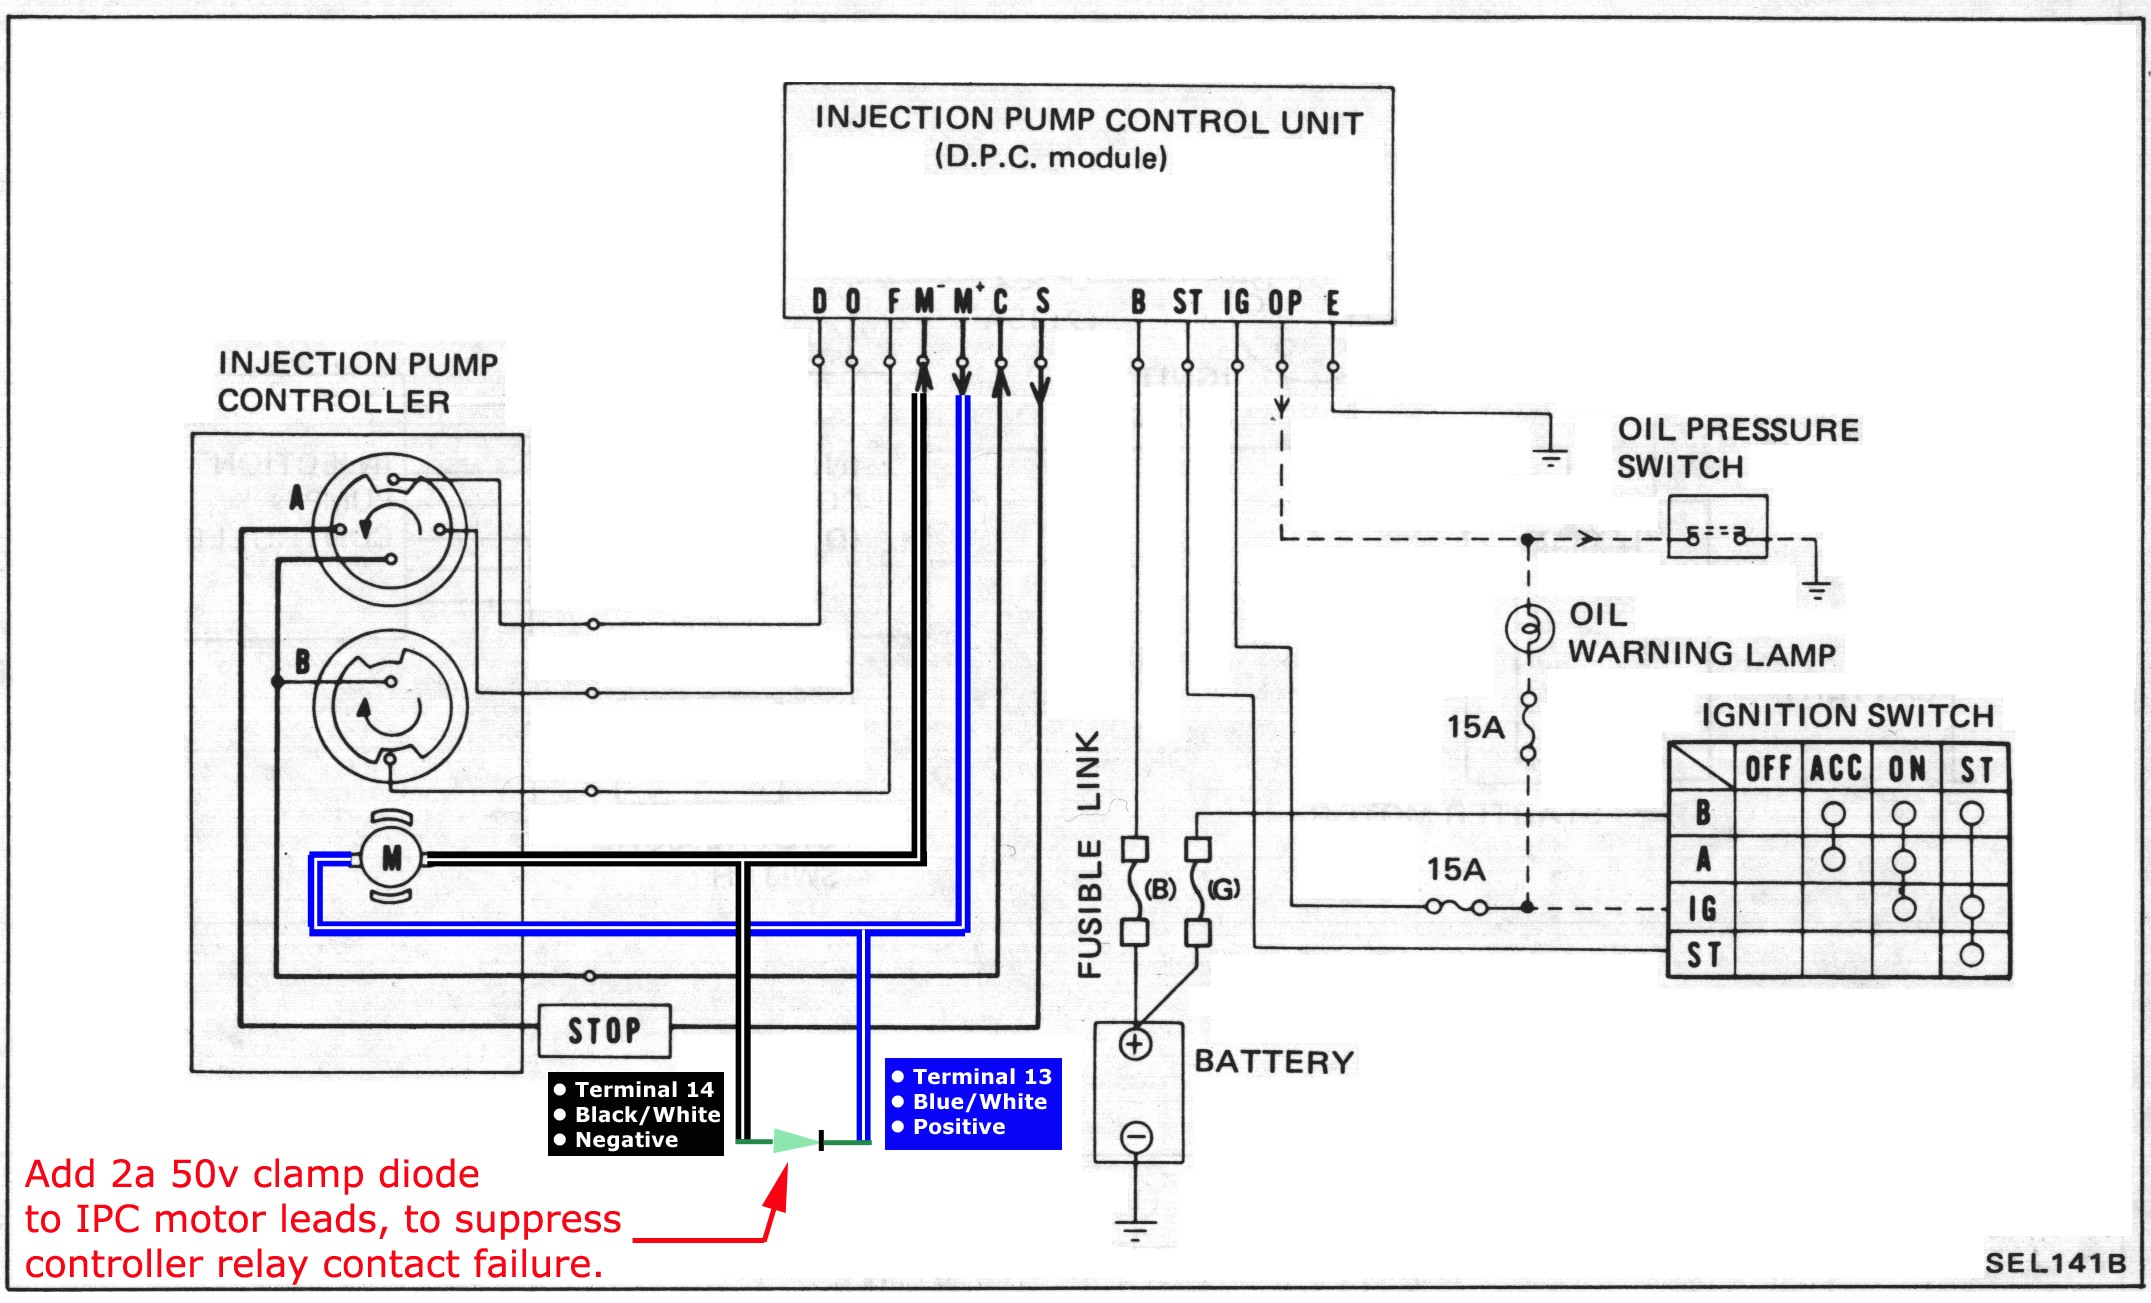 nissandiesel forums view topic dpc module injection controller